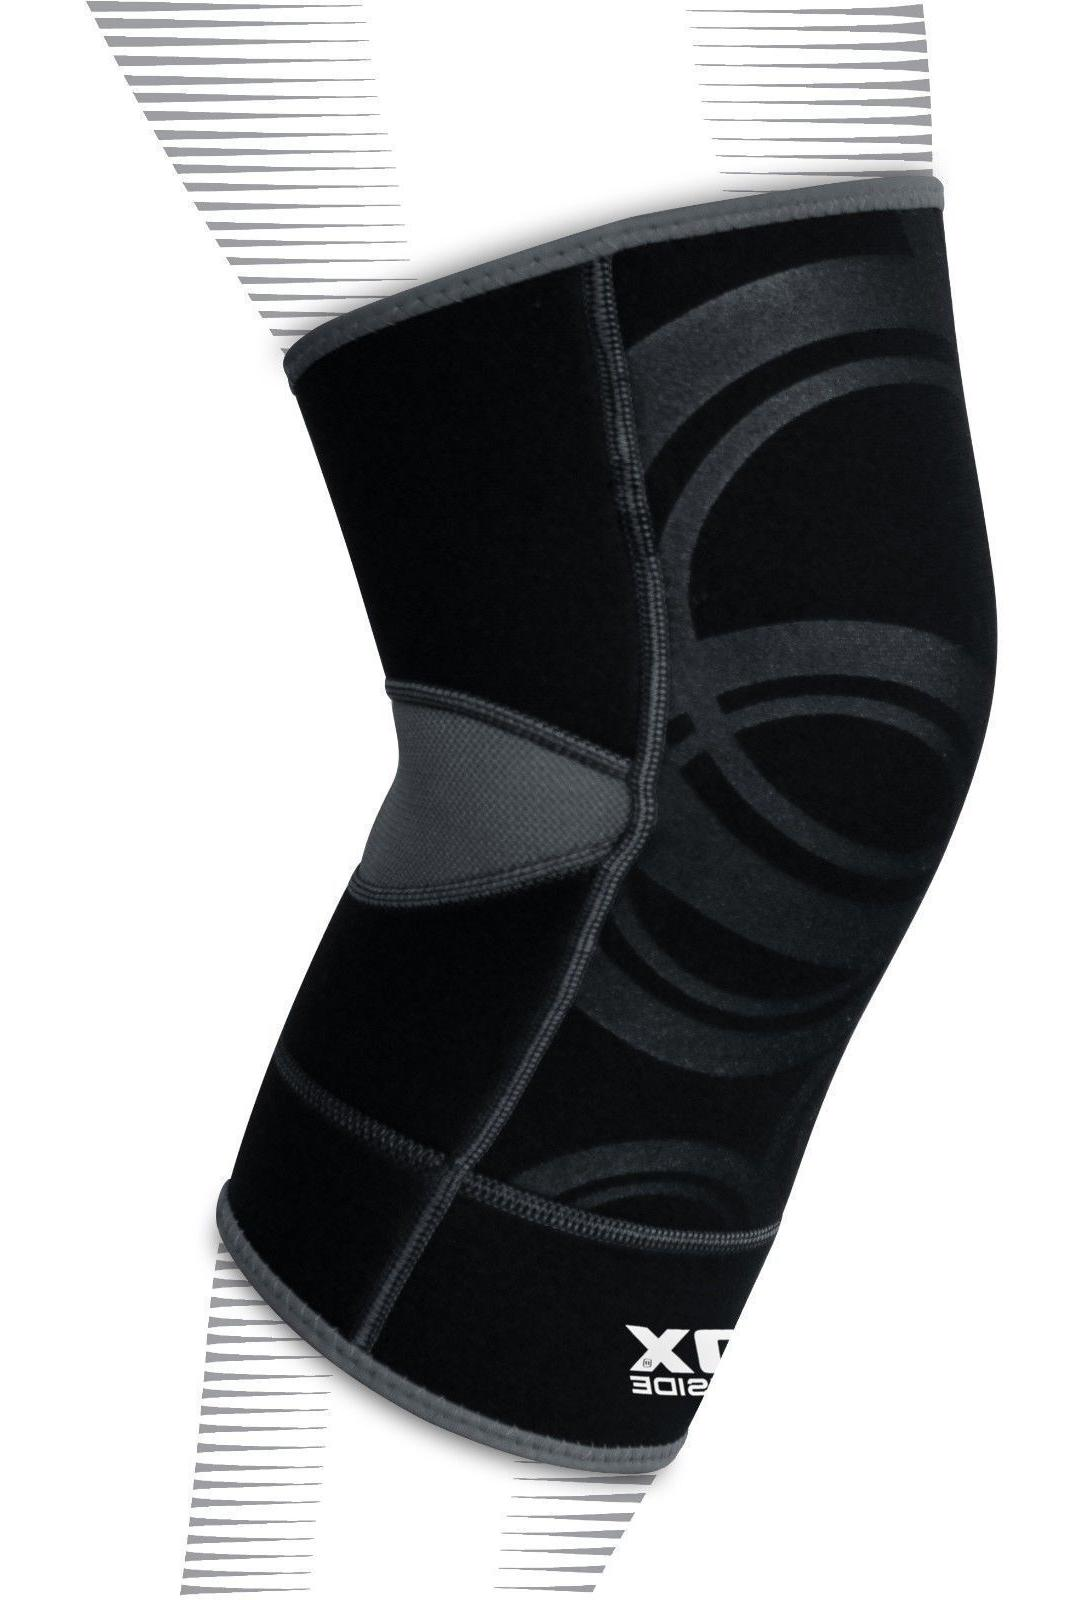 RDX Support Brace Relief Running Fitness Neoprene U